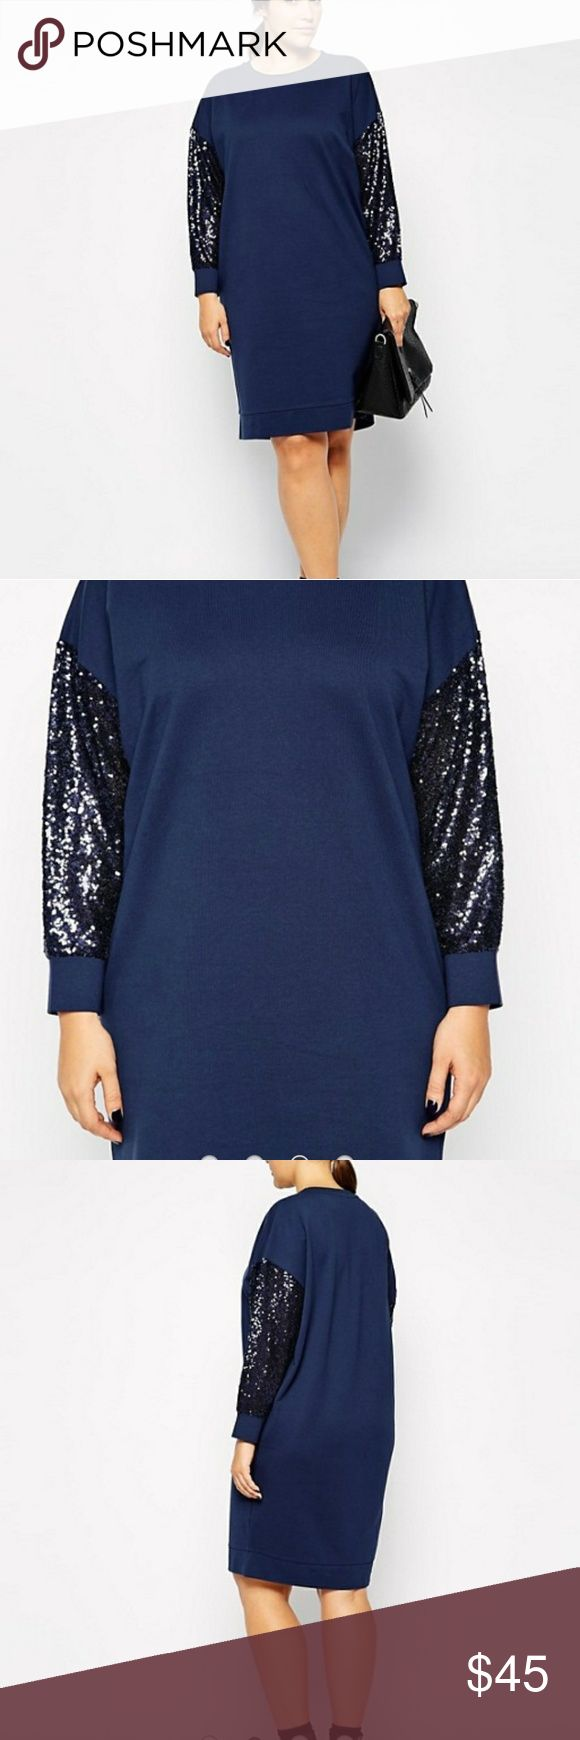 "ASOS CURVE Exclusive Sweater Dress with Sequins ASOS CURVE Exclusive Dress with Sequin Sleeves. Navy blue. Excellent condition.armpit to armpit 28"" (PLUS LOTS OF STRETCH) 39"" shoulder to bottom of dress. Size 14. Sweatshirt material. 100% cotton. ASOS Curve Dresses"